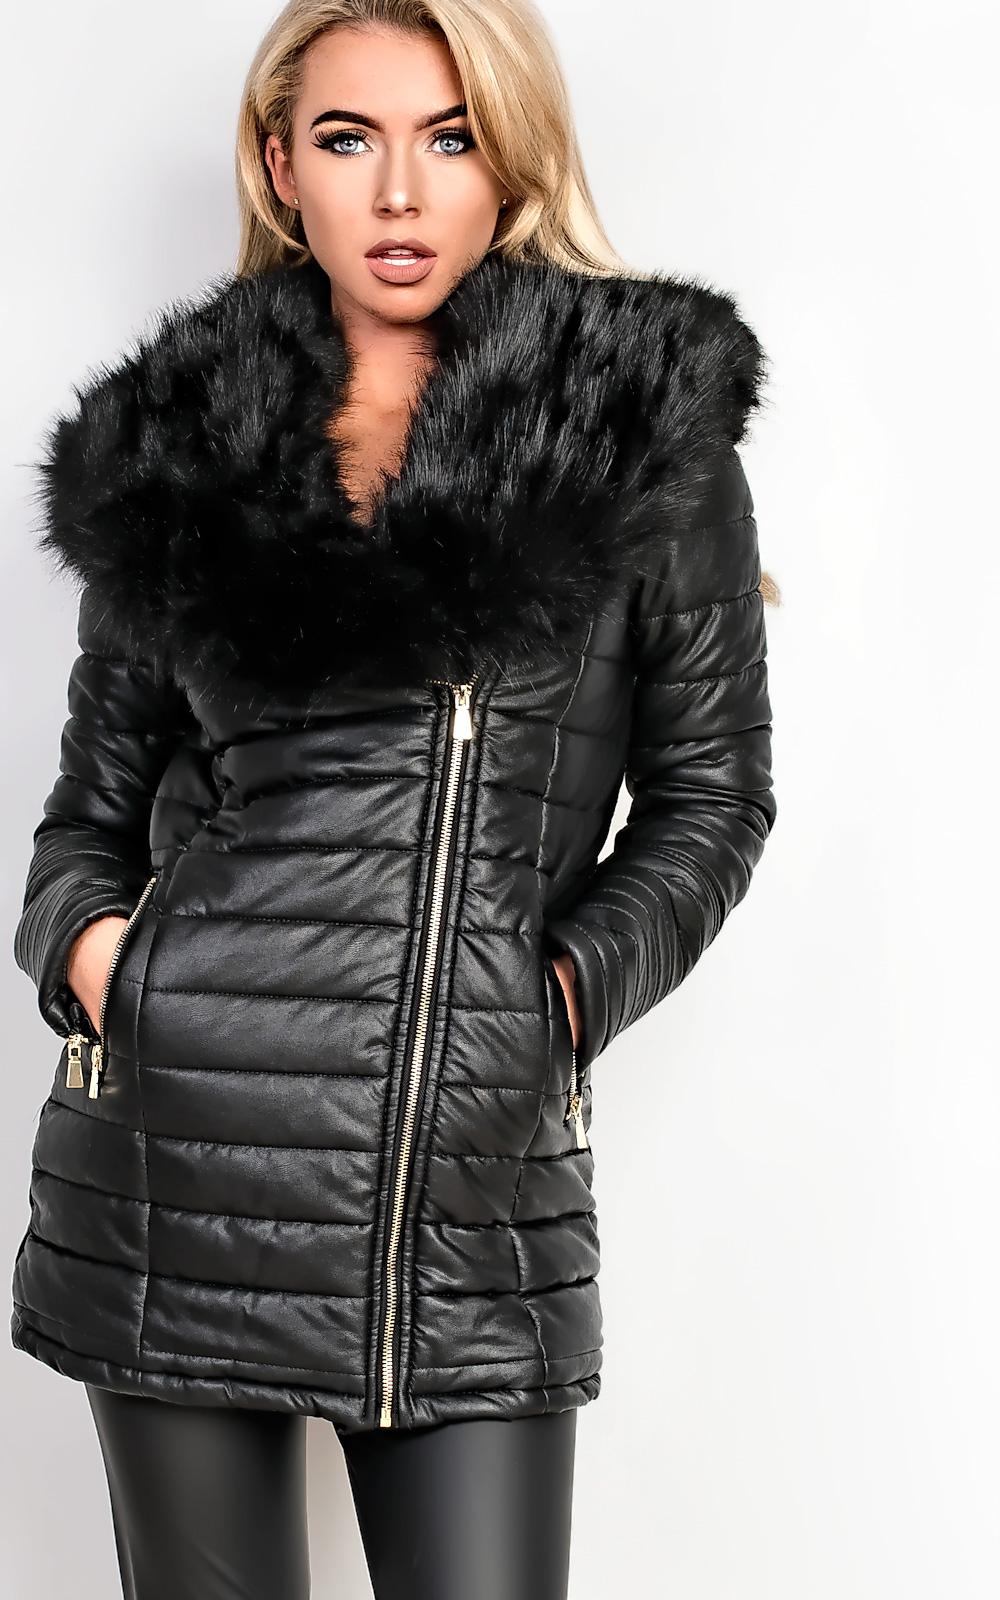 Free shipping and returns on leather & faux-leather coats & jackets for women at private-dev.tk Shop the latest styles from brands like BLANKNYC, Bernardo, Halogen & more.